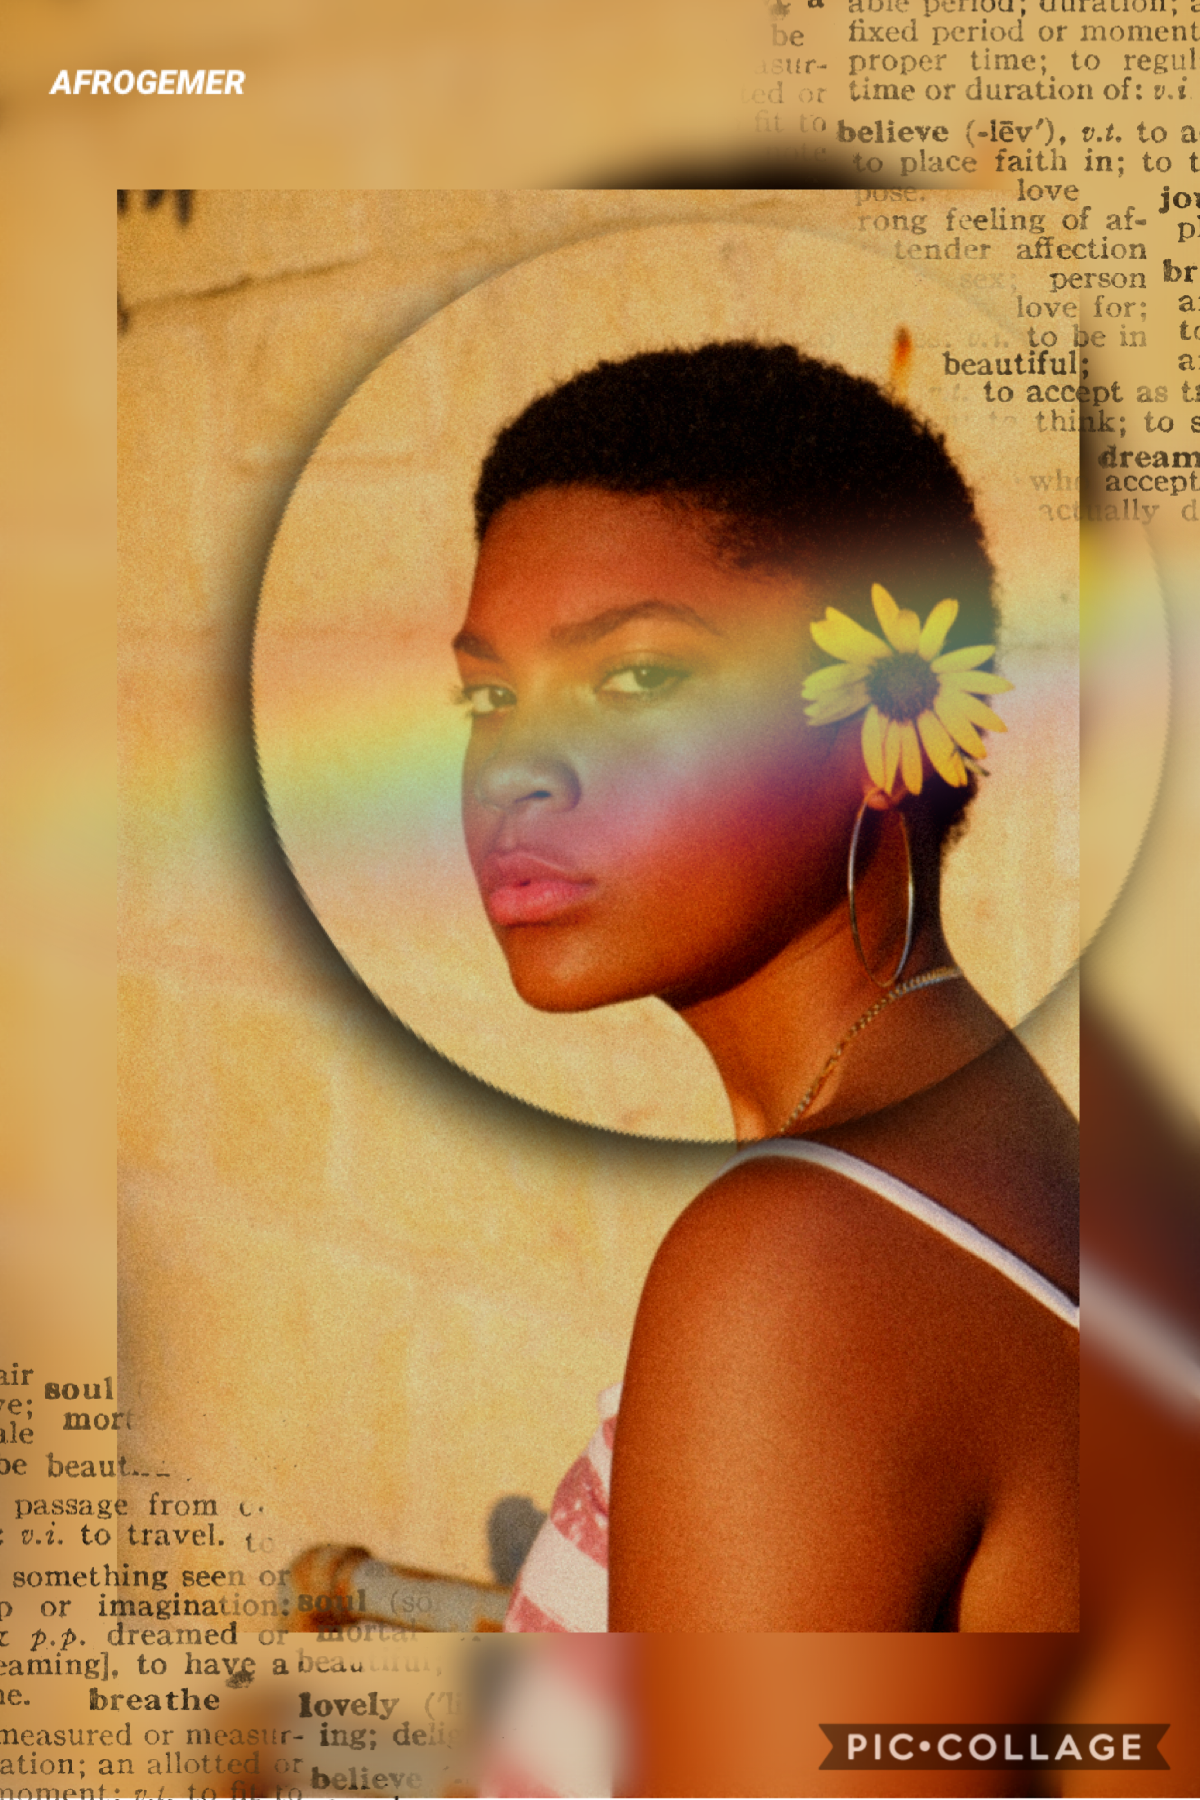 Collage by AFROGEMER